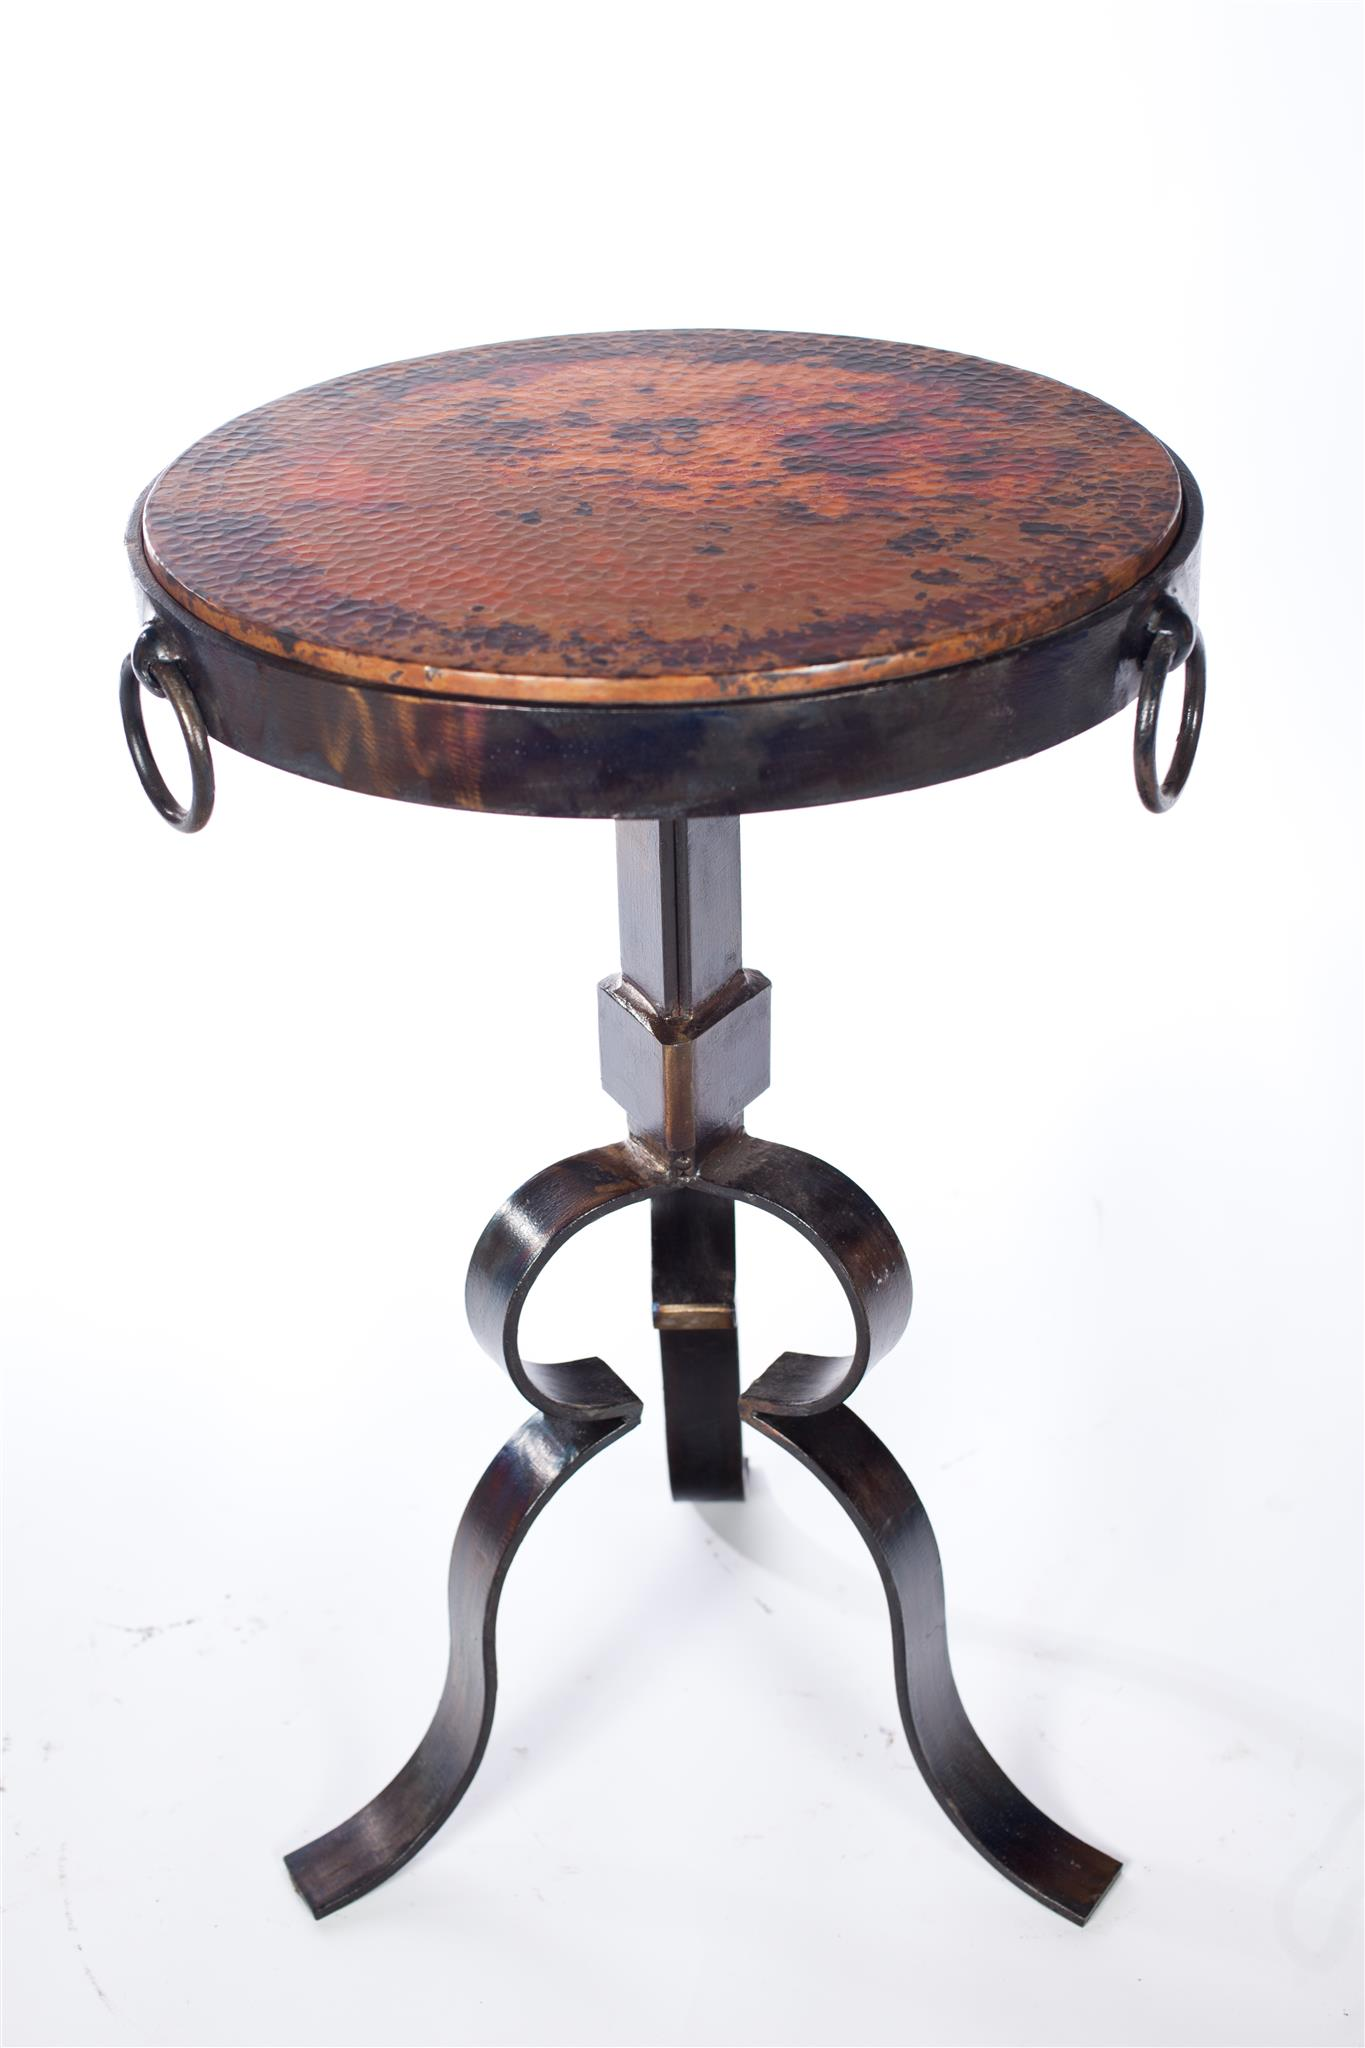 round iron accent table with hammered copper top boulevard urban living lounge furniture end coffee decorative accents chest mudroom timber trestle legs comfy patio black oval